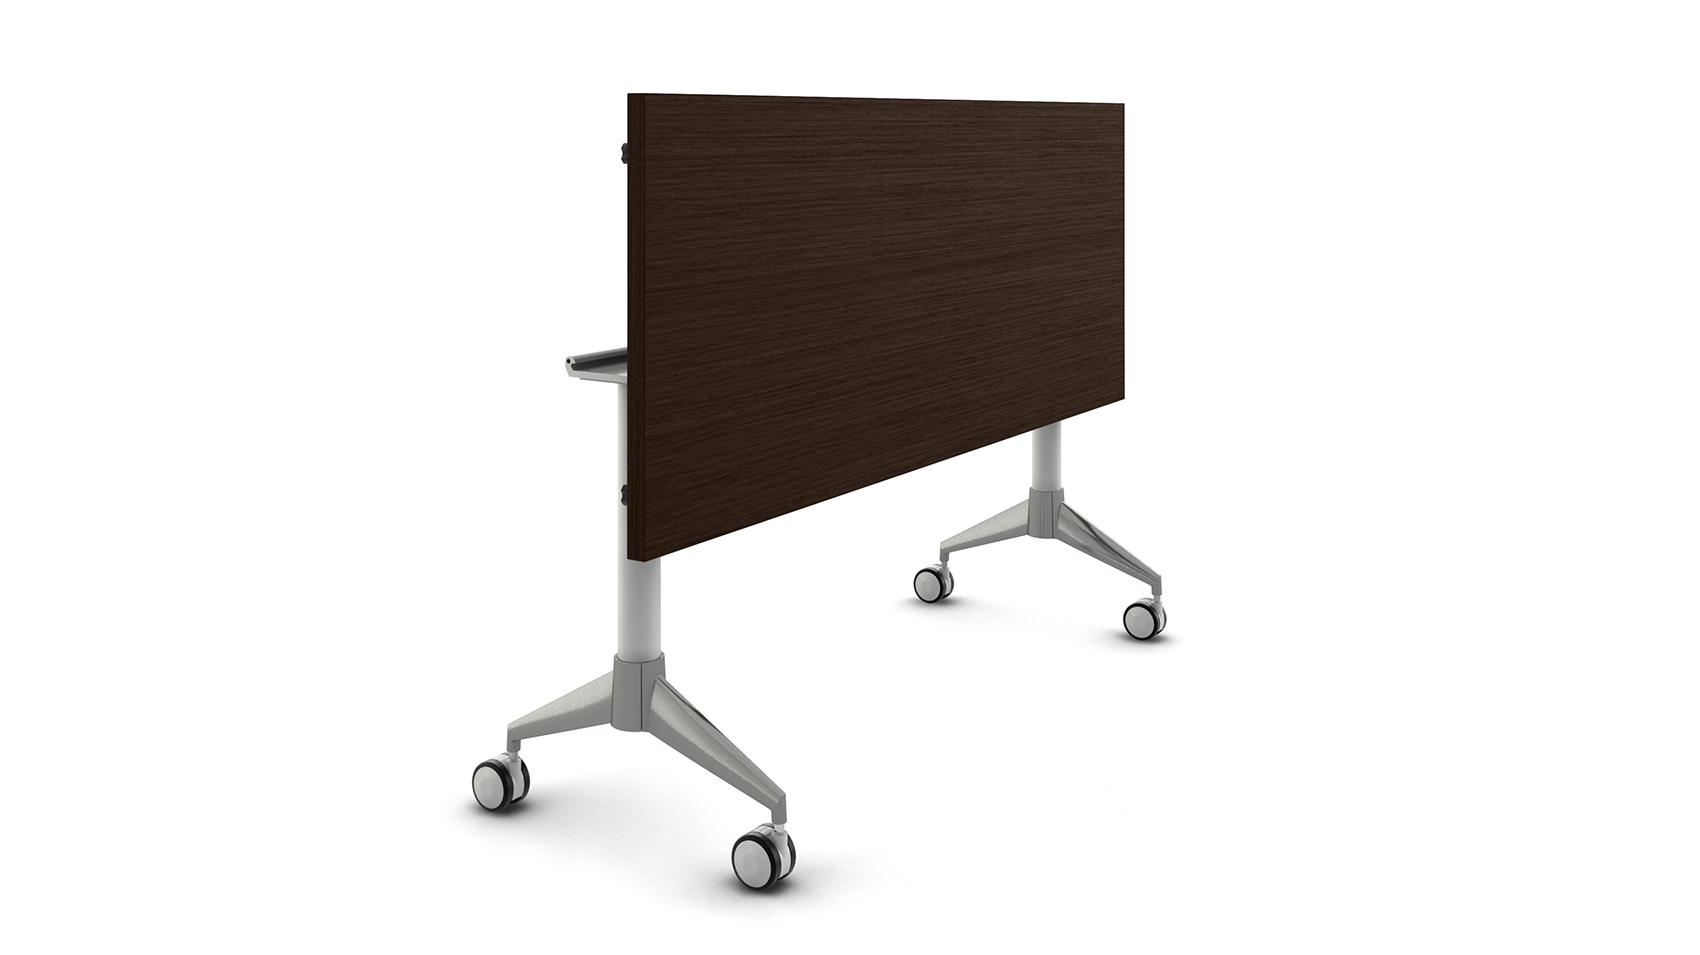 Applause Y-Base Table with Casters